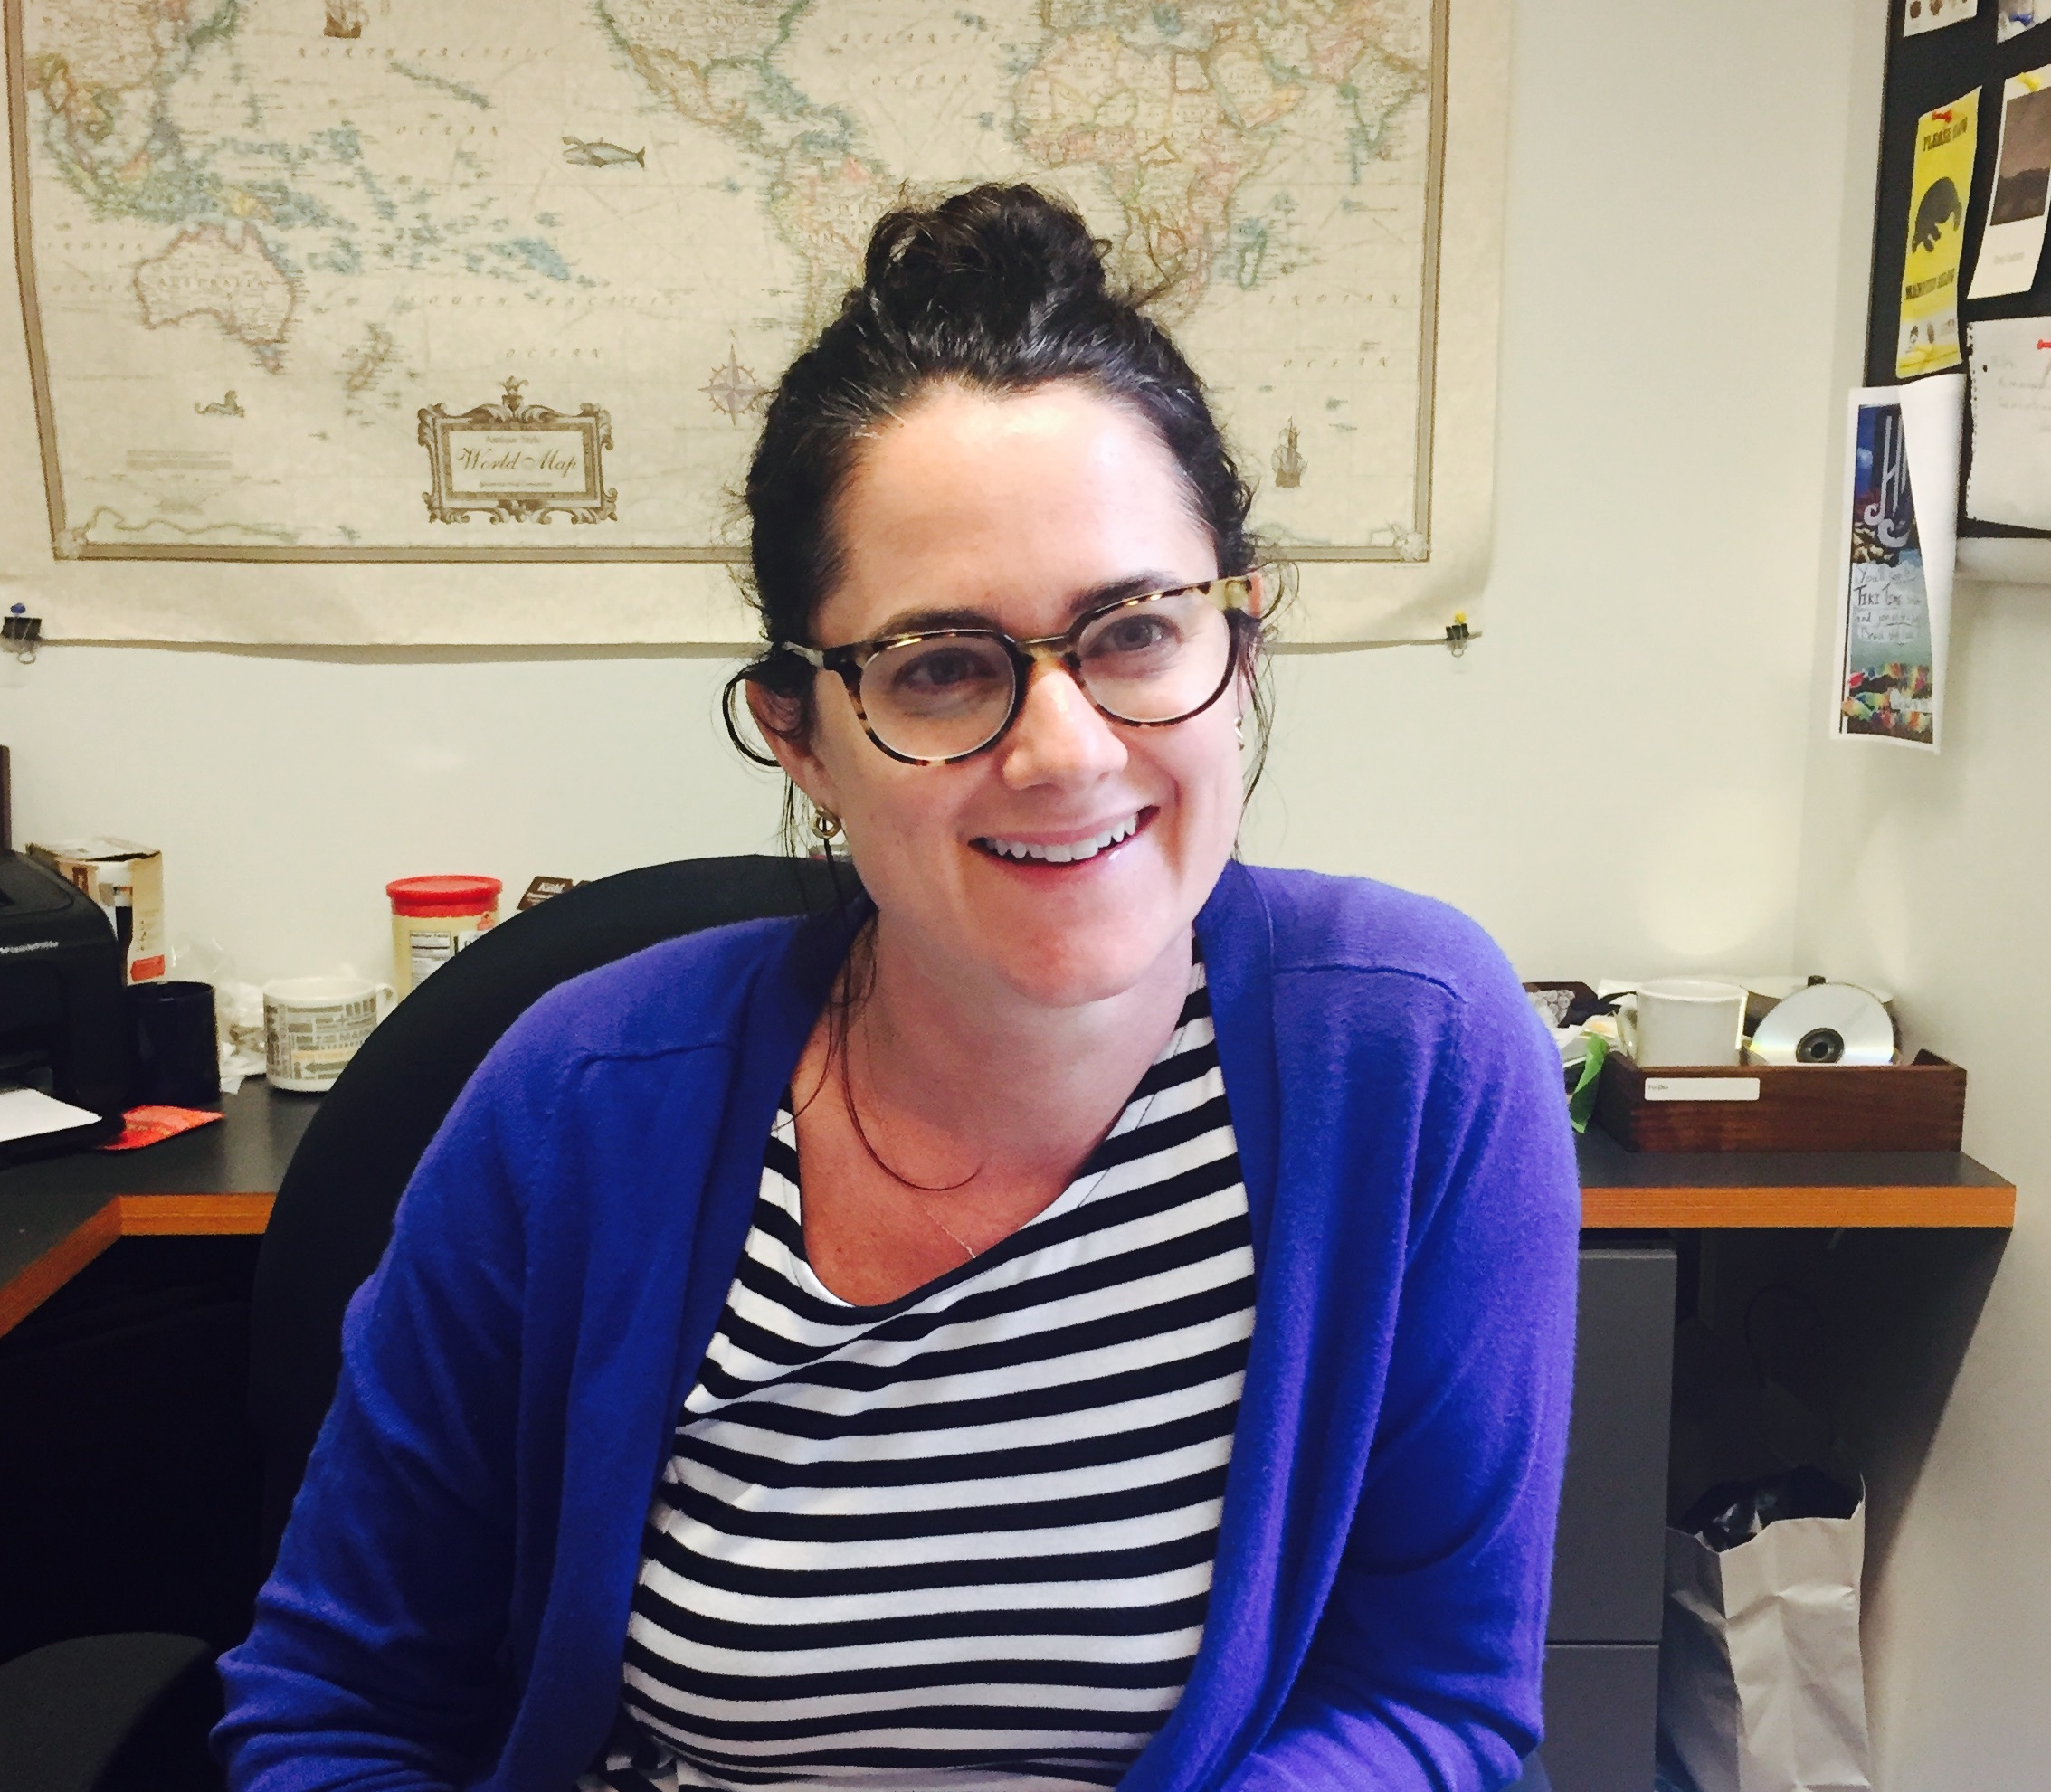 EMILY MITCHELL-MARELL - Emily Mitchell-Marell has been the undergraduate academic advisor in the Politics and International Relations department at NYU since 2008. Emily is so happy to be on the advisory board for the IR insider and is here to support students in their vision and goals!